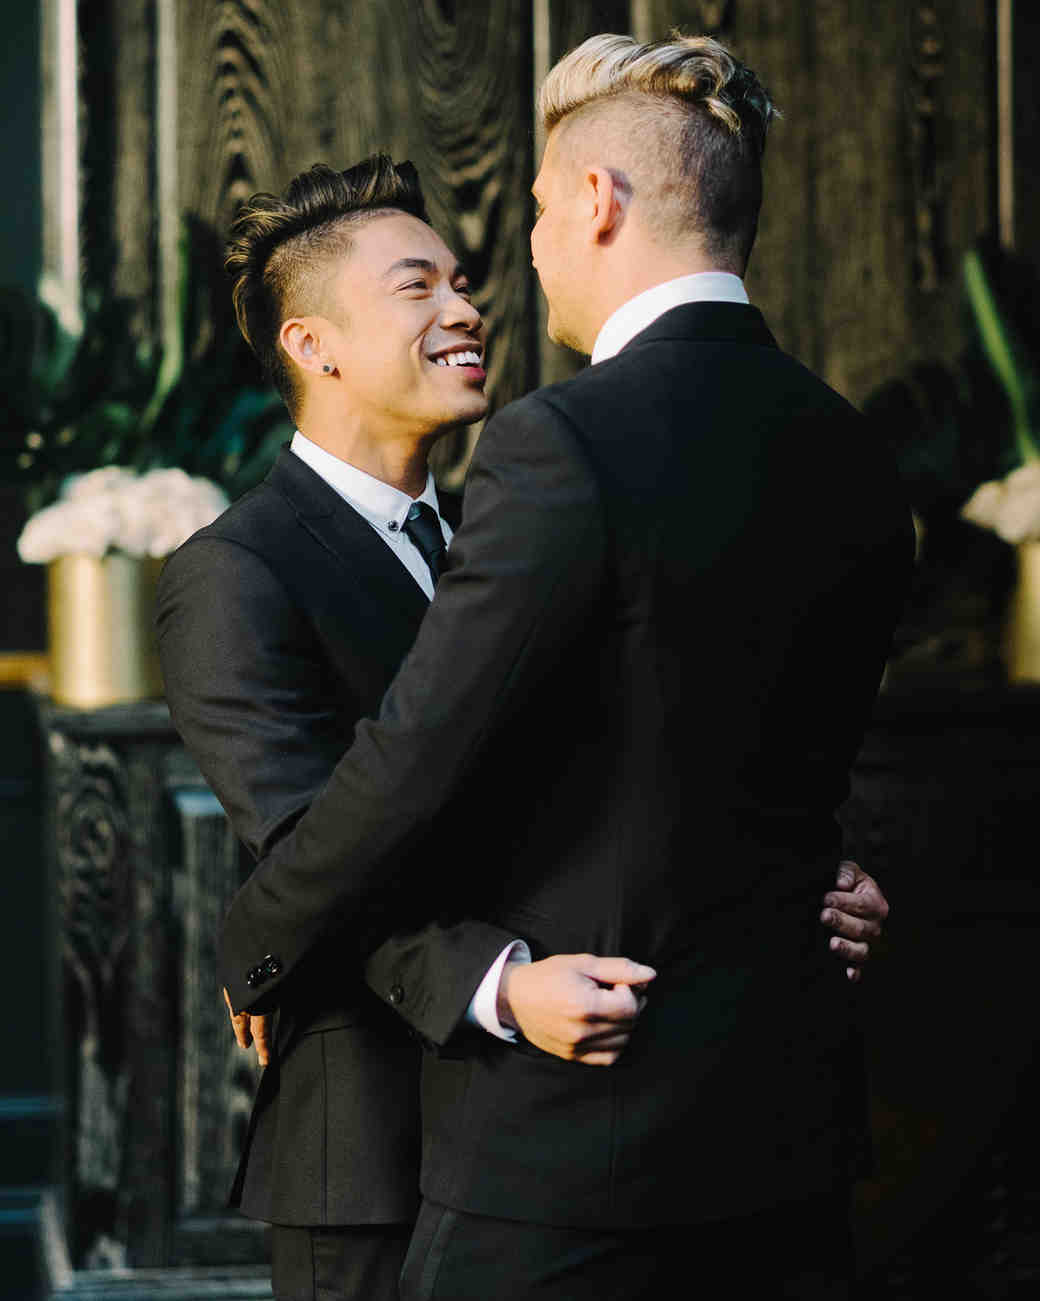 grooms' first dance together after city hall wedding